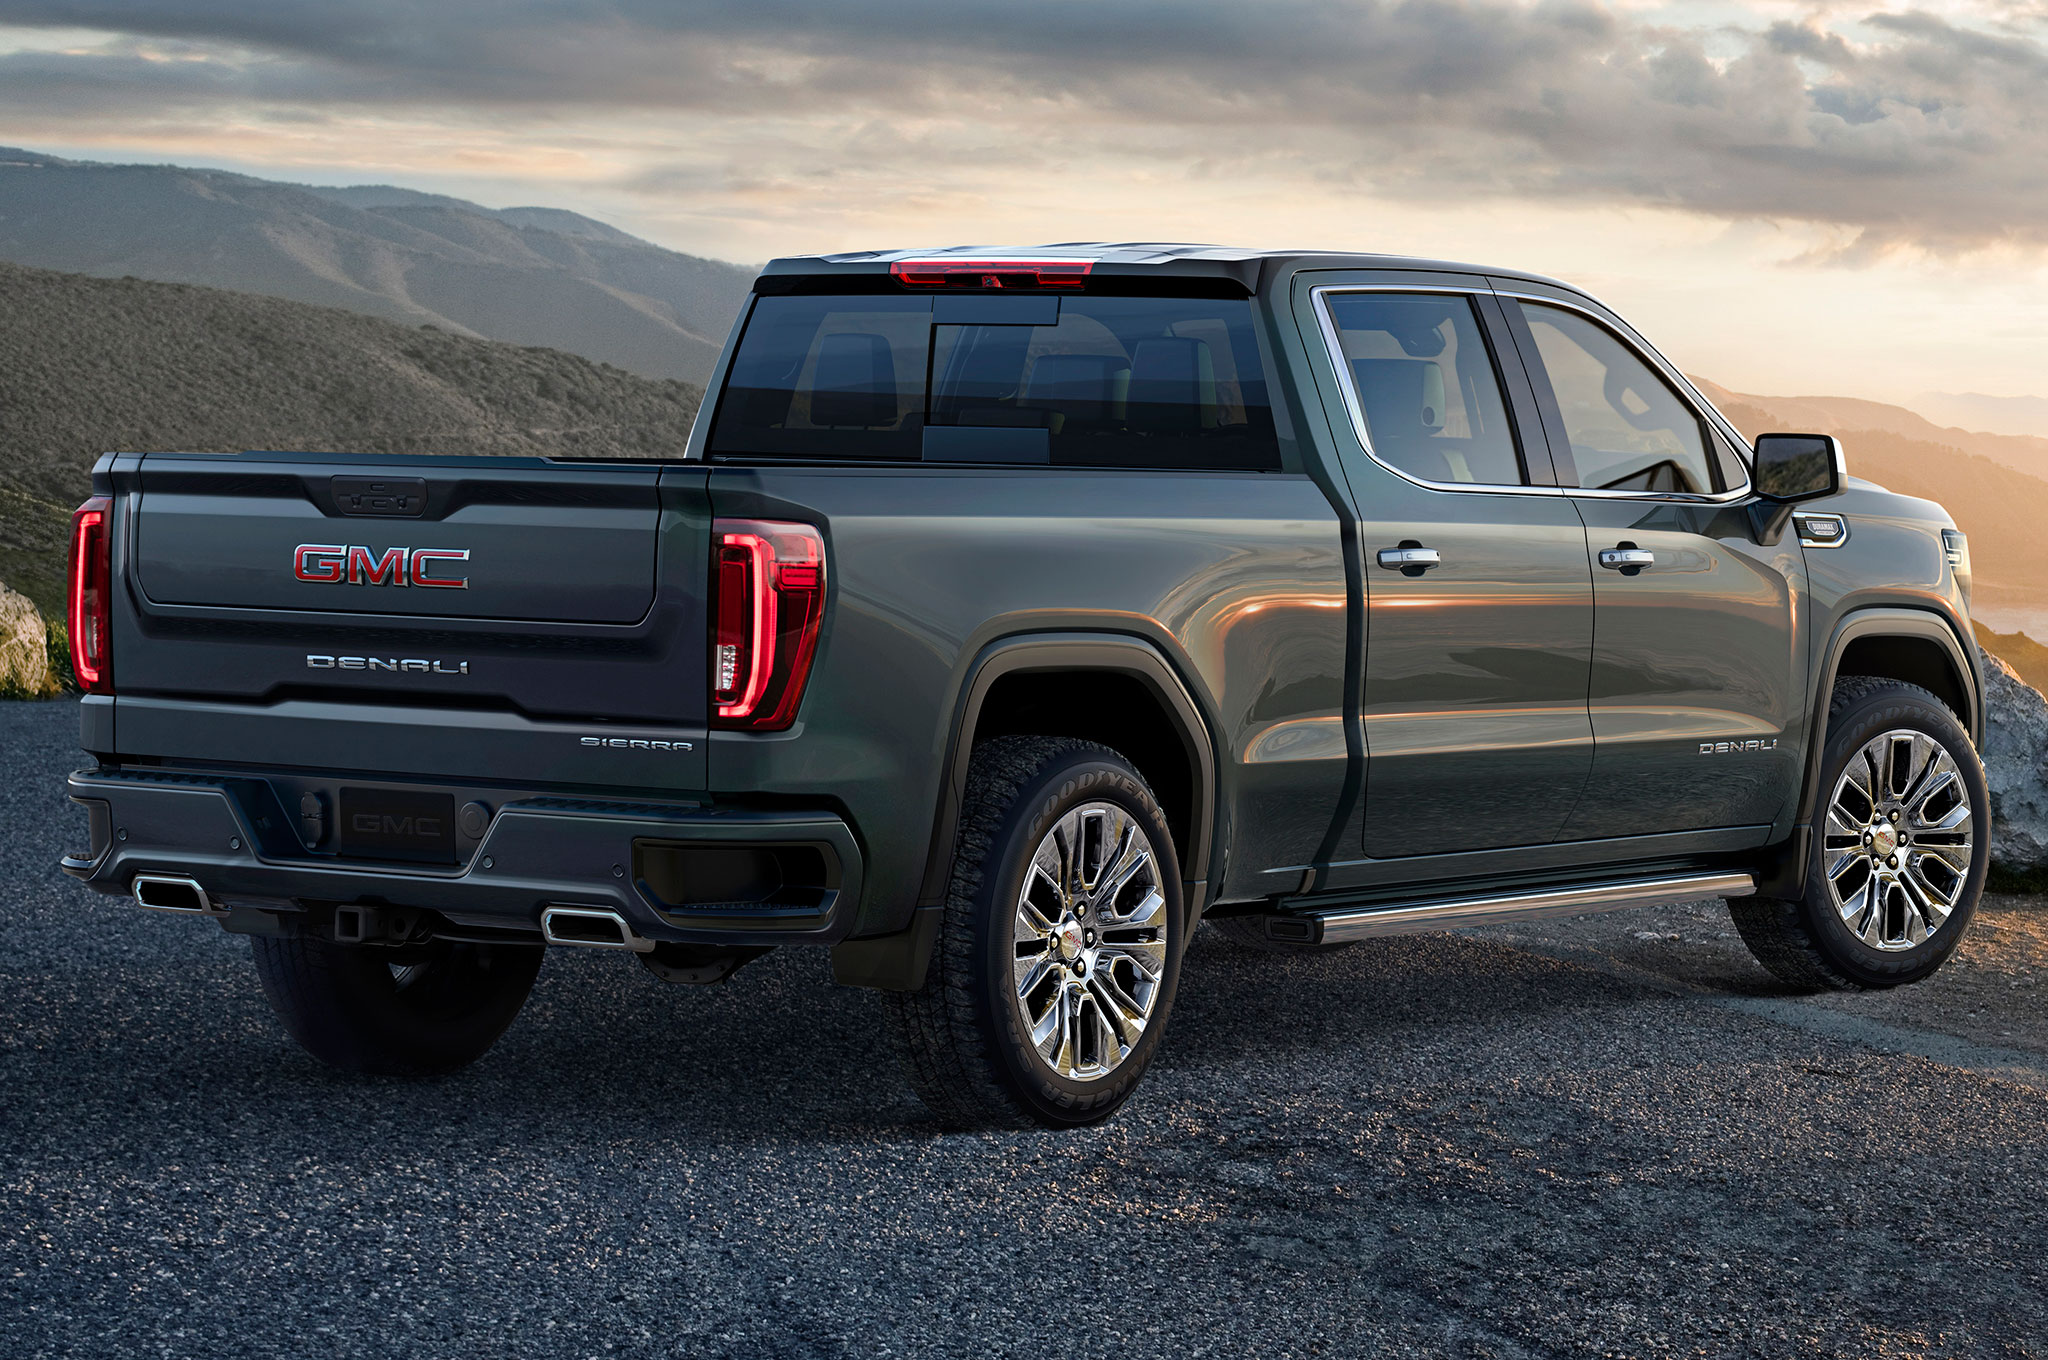 2019 gmc sierra elevation packs standard turbo four engine. Black Bedroom Furniture Sets. Home Design Ideas